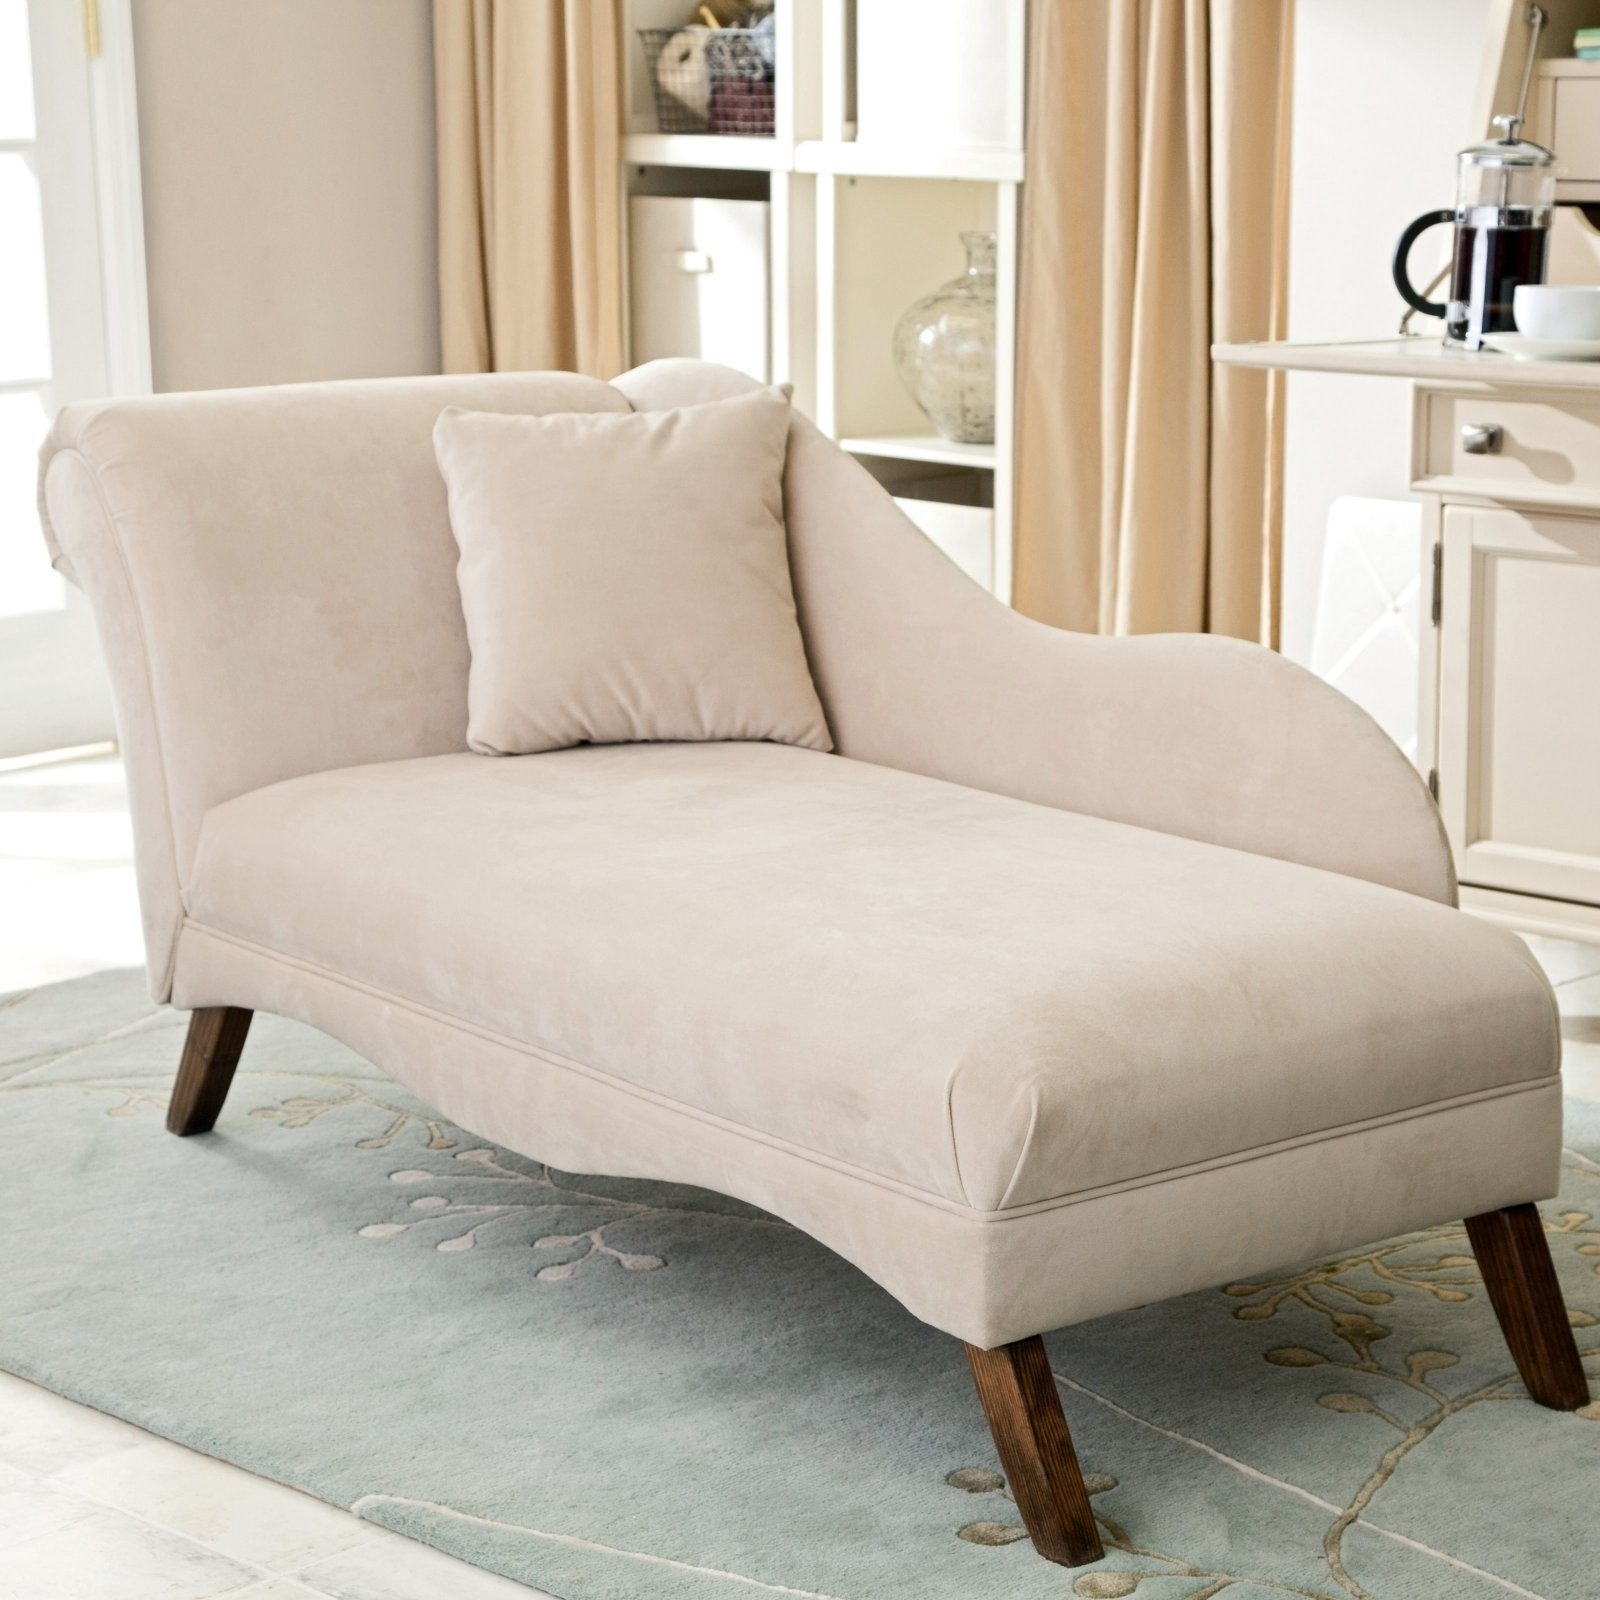 Favorite Indoor Chaise Lounges Intended For Indoor Lounge Furniture – Myfavoriteheadache (View 12 of 15)